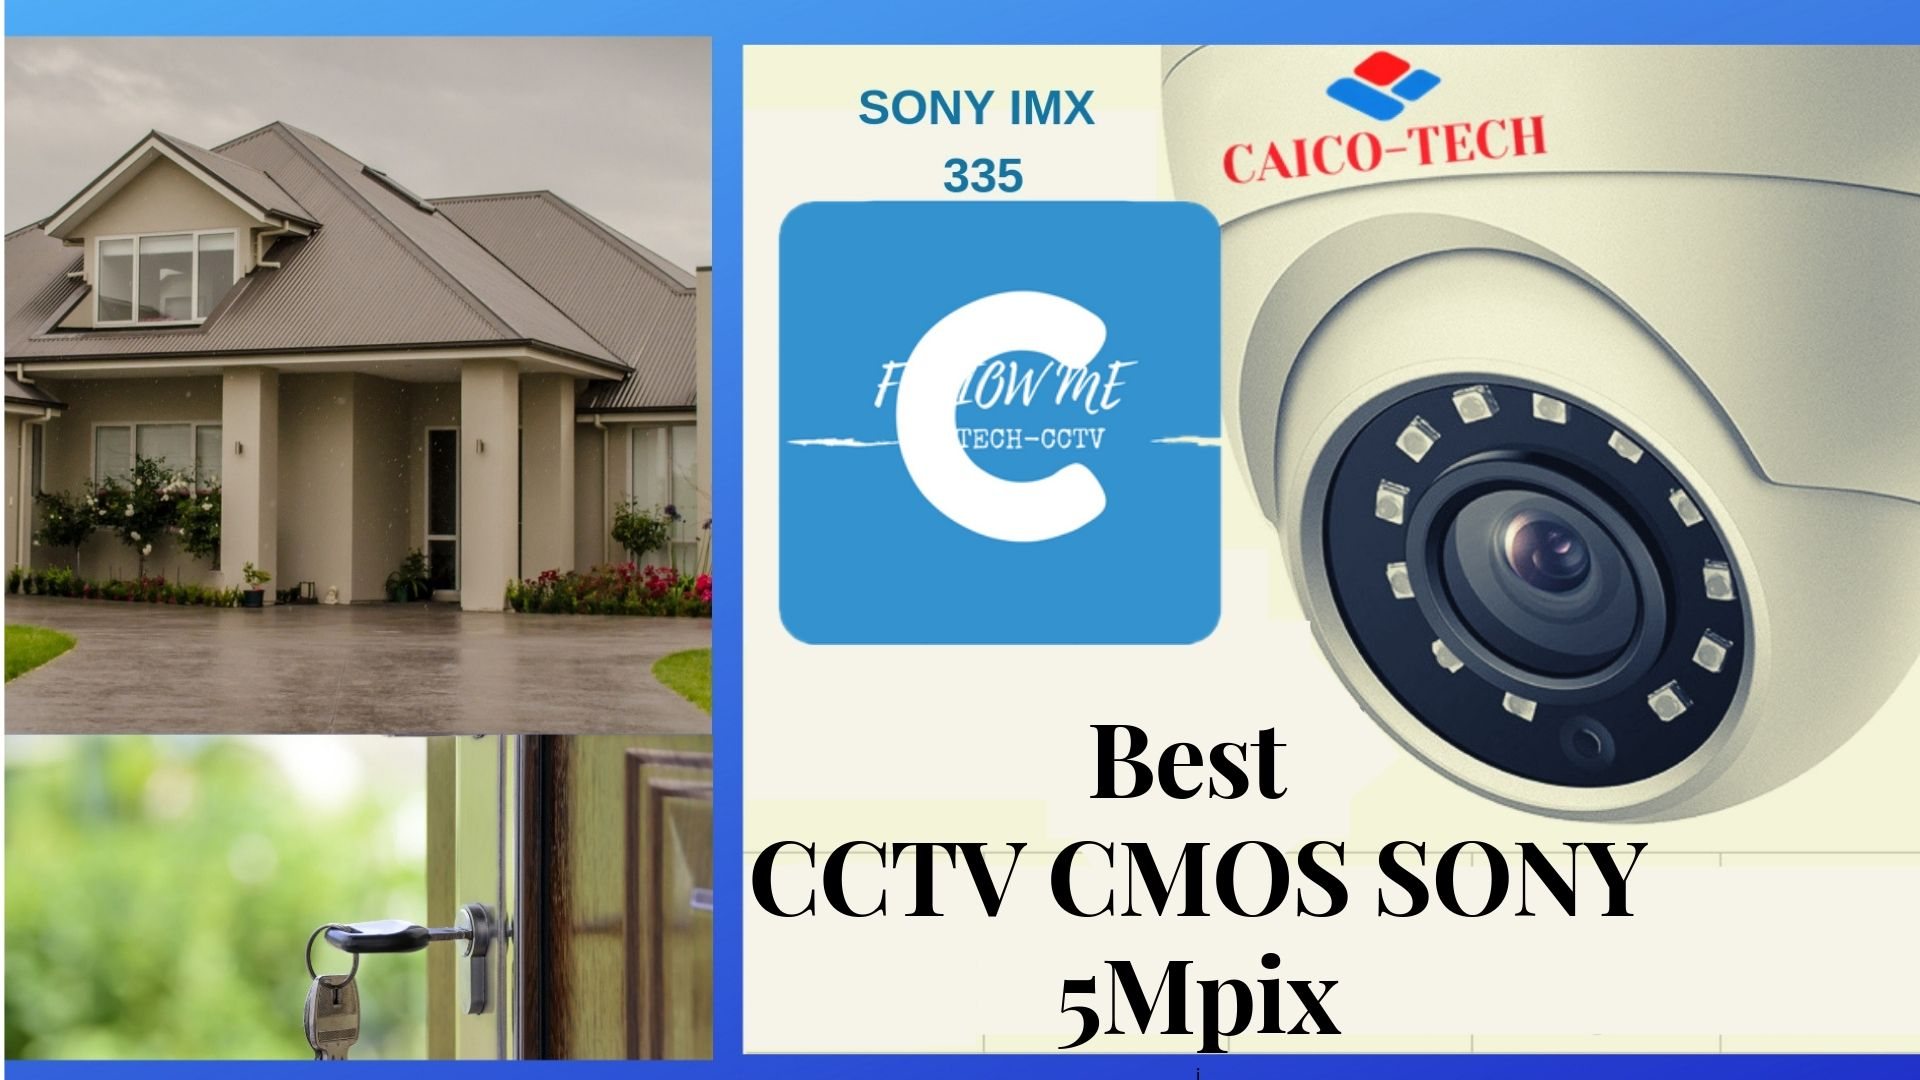 CAICO TECH CCTV DOME CAMERA AHD 5 Mpix CMOS SONY IMX 335